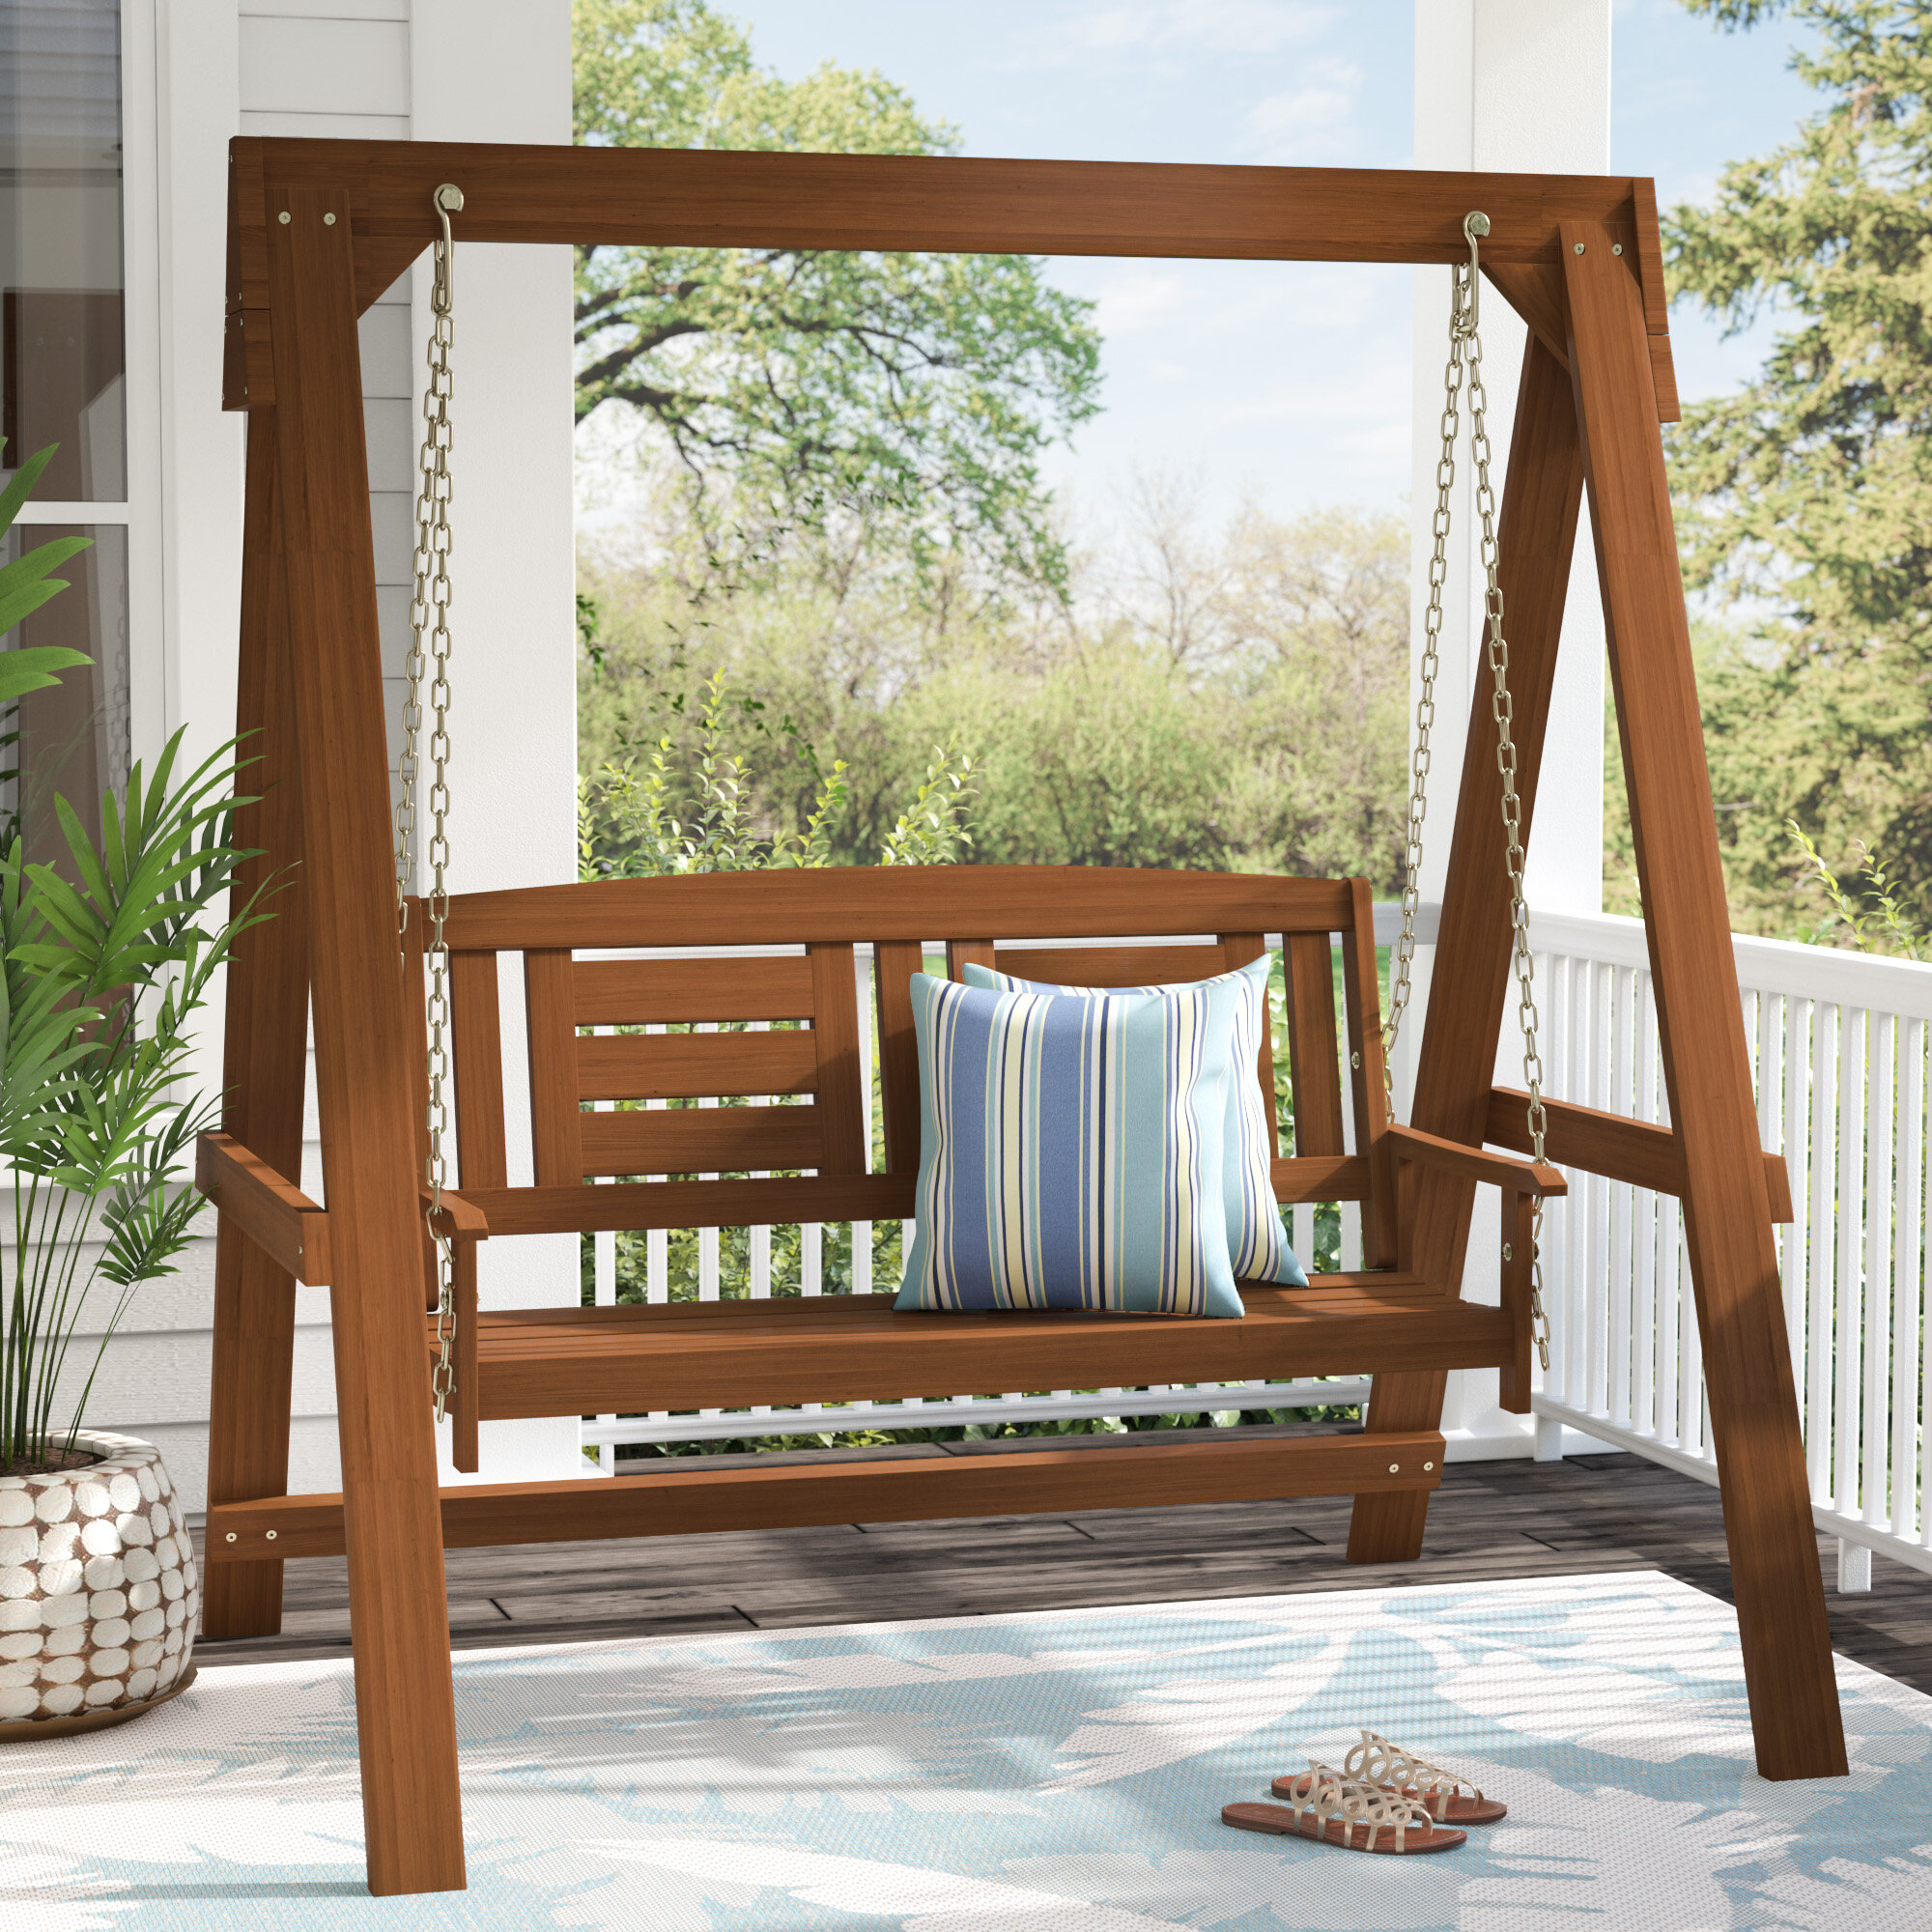 Langley Street Arianna Hardwood Hanging Porch Swing With Stand Reviews Wayfair